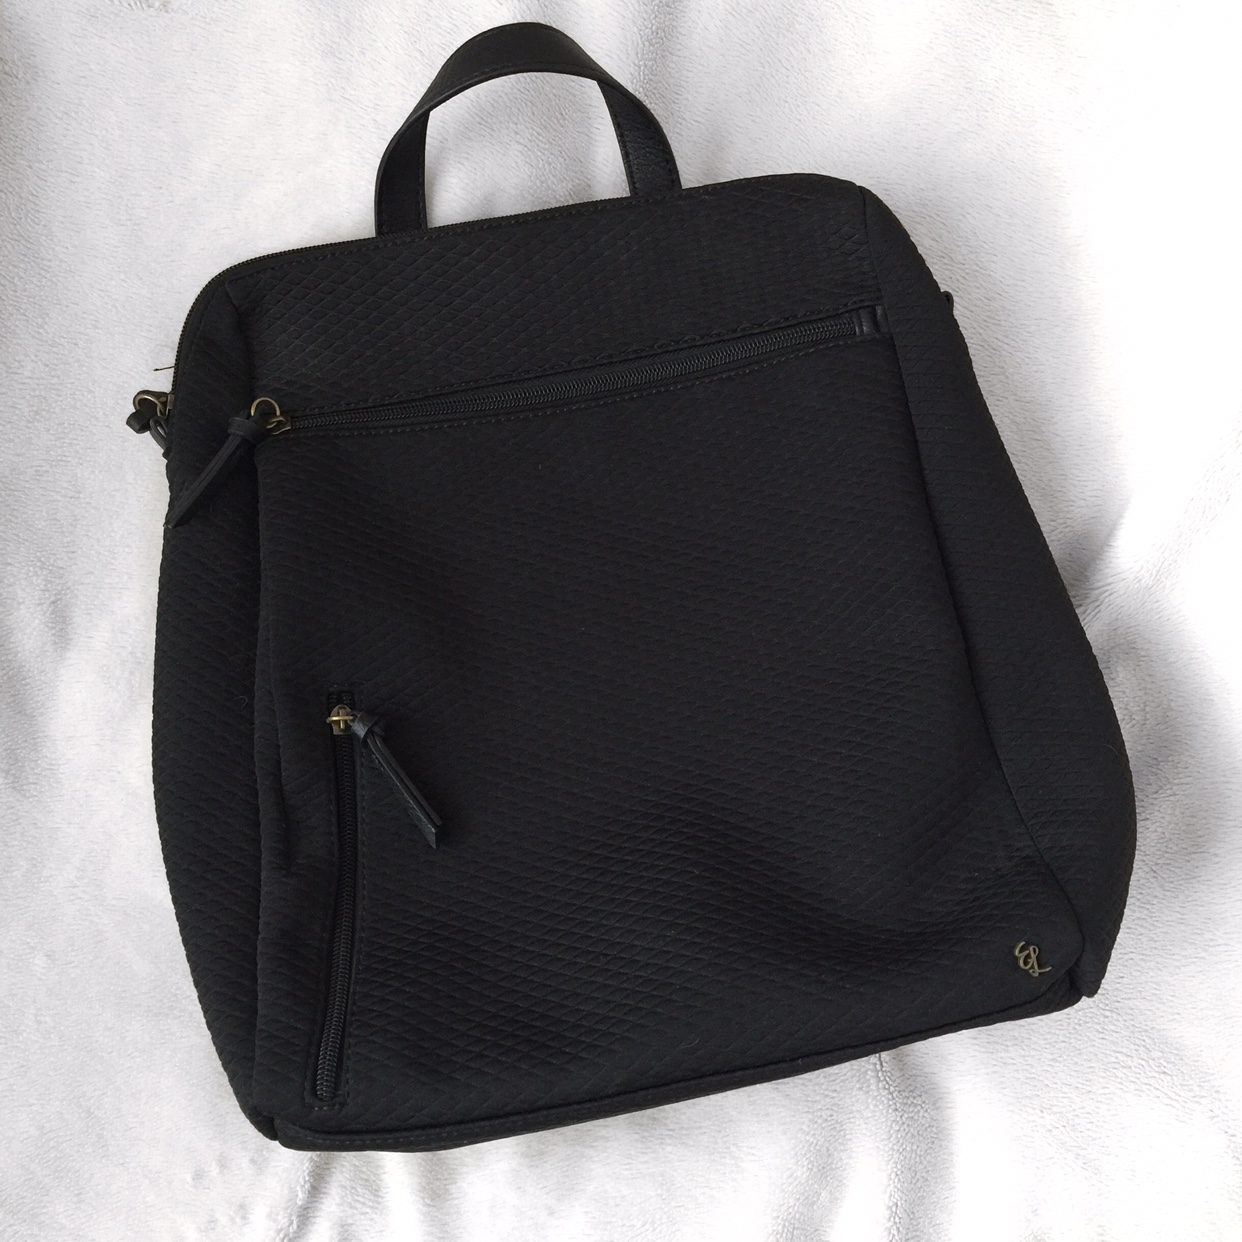 ad49fb00e057 New without tags Elliot Lucca Olvera Metro laptop... - Depop